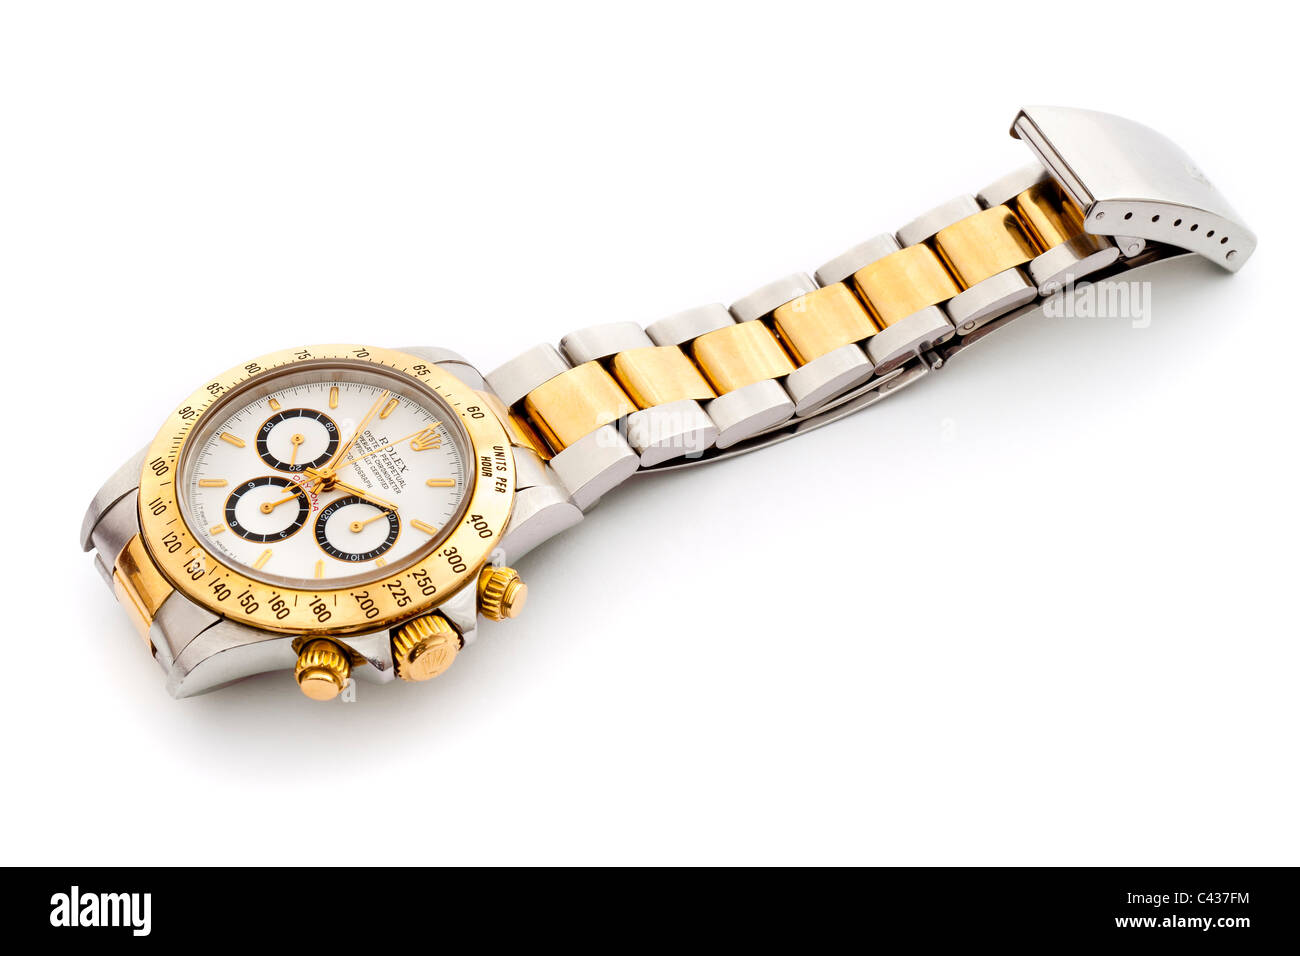 Rolex Daytona Cosmograph Oyster Perpetual Chronometer 18k gold and steel Swiss chronograph wrist watch with white - Stock Image